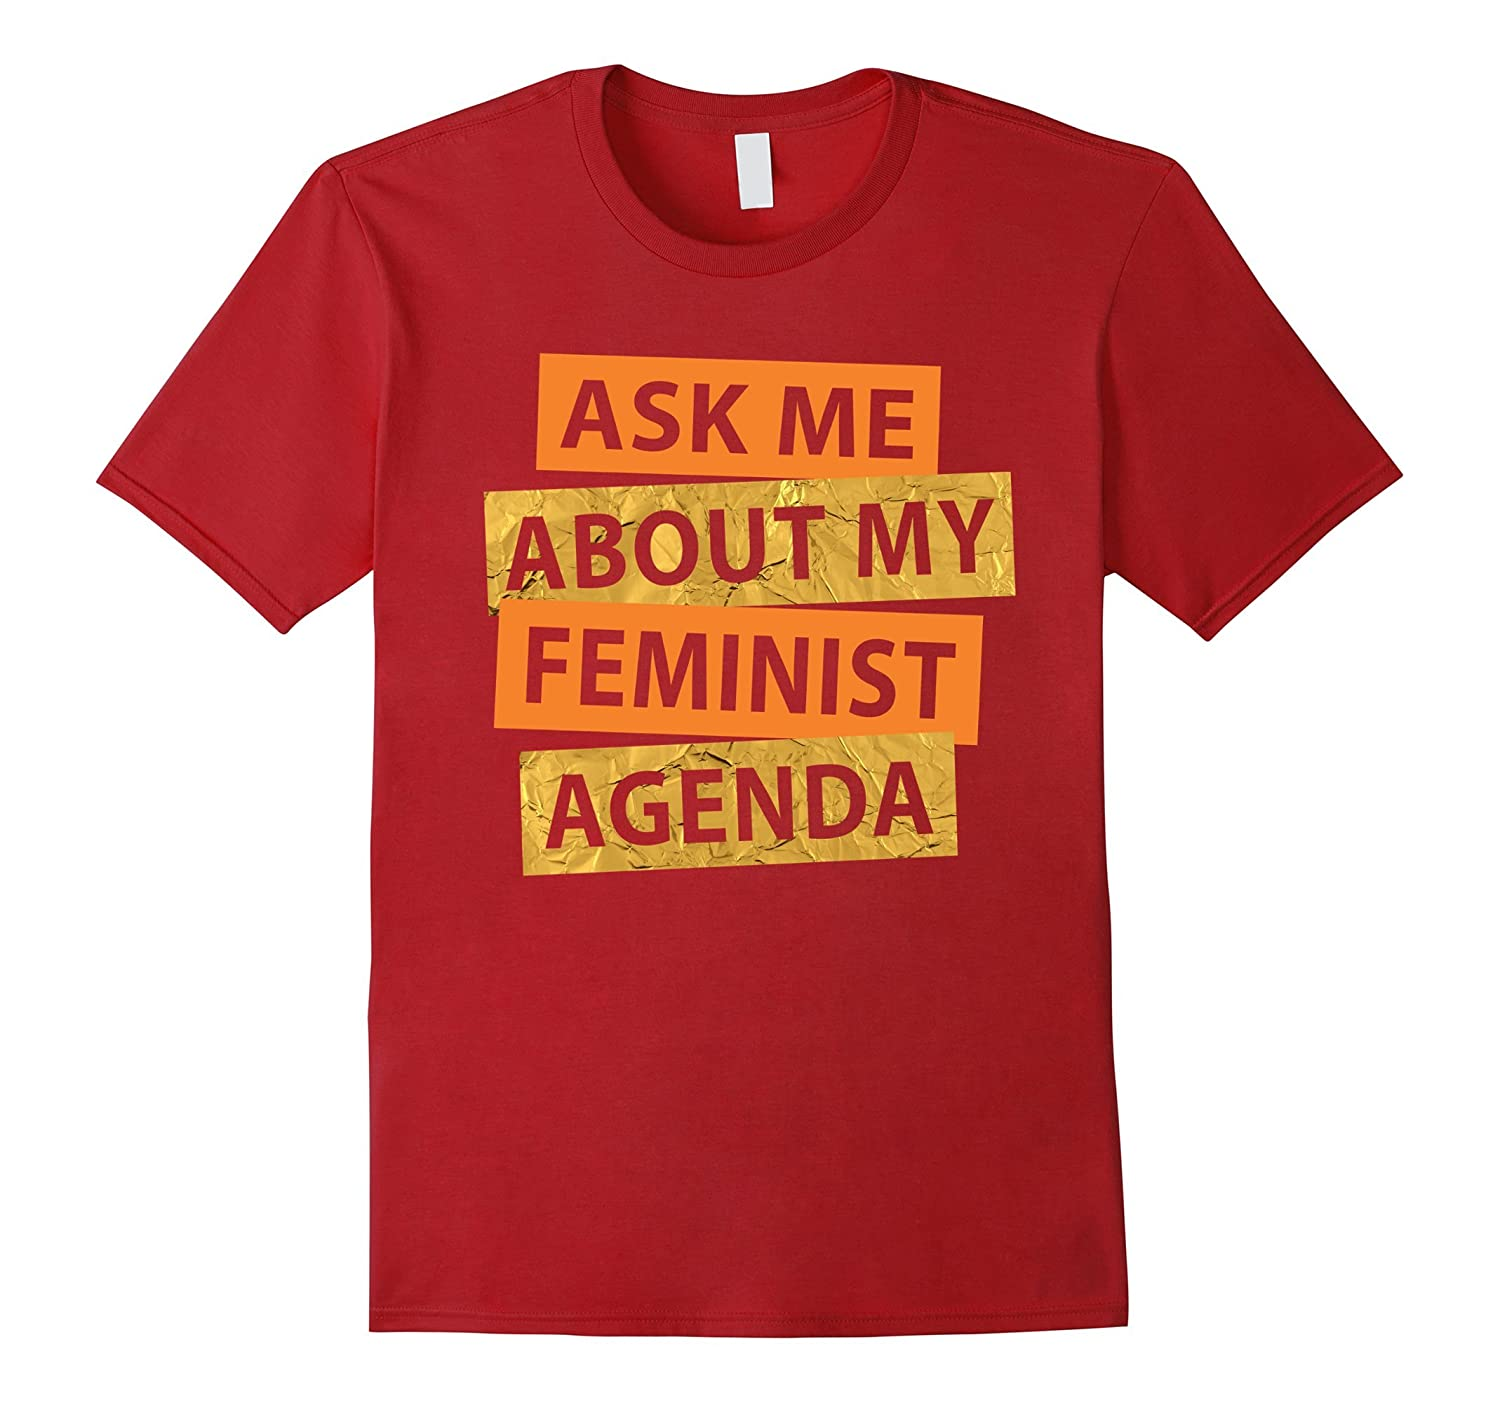 Ask me about my feminist agenda T-Shirt, #StandWithChelseaCa